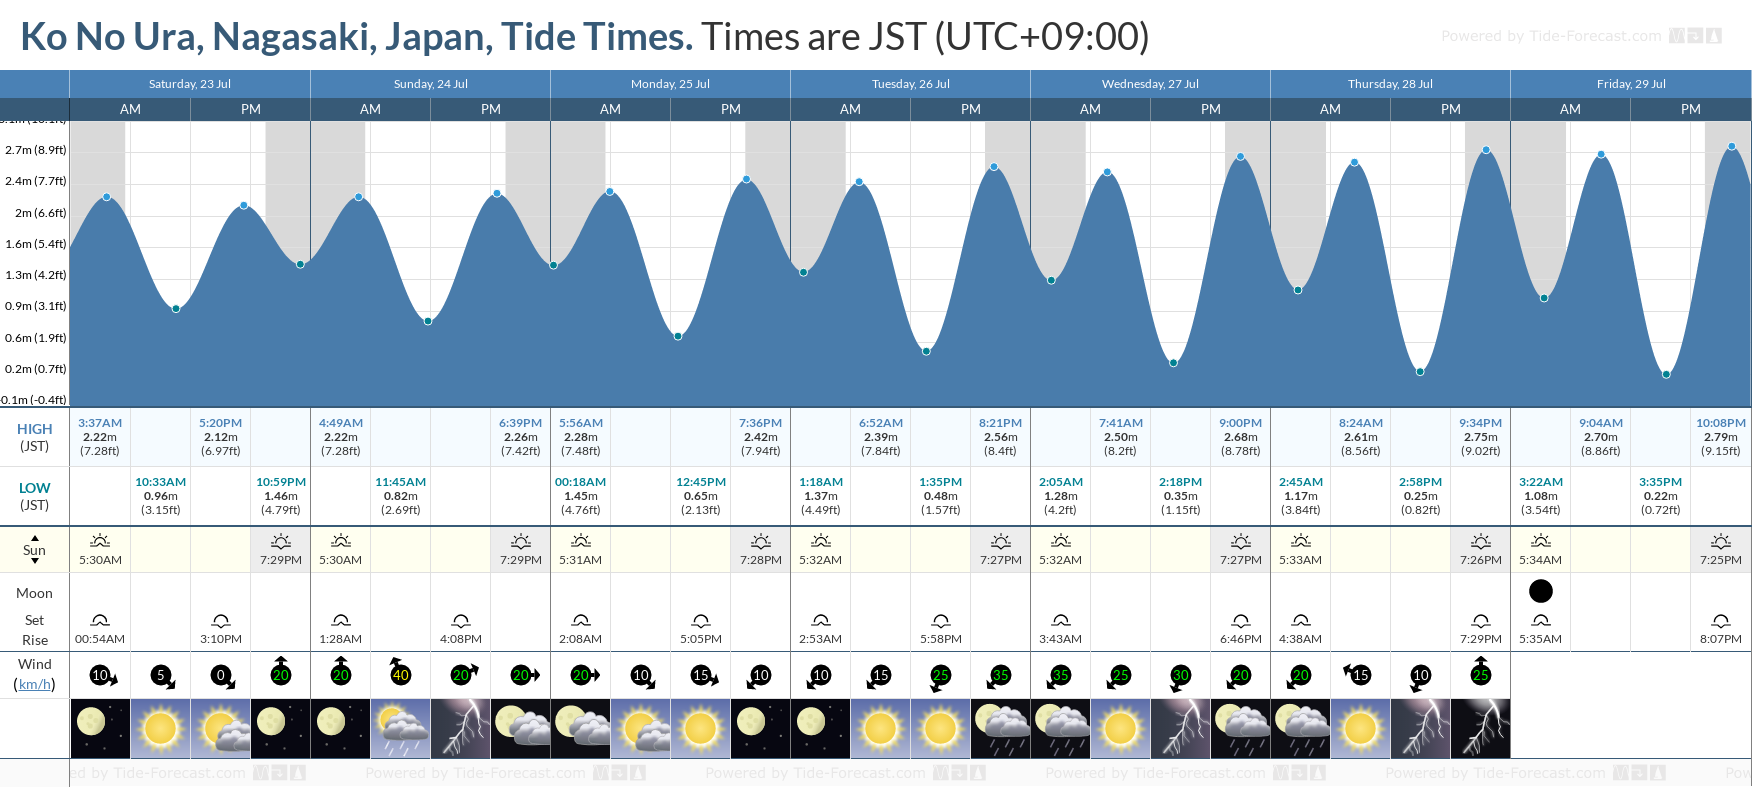 Ko No Ura, Nagasaki, Japan Tide Chart including high and low tide tide times for the next 7 days